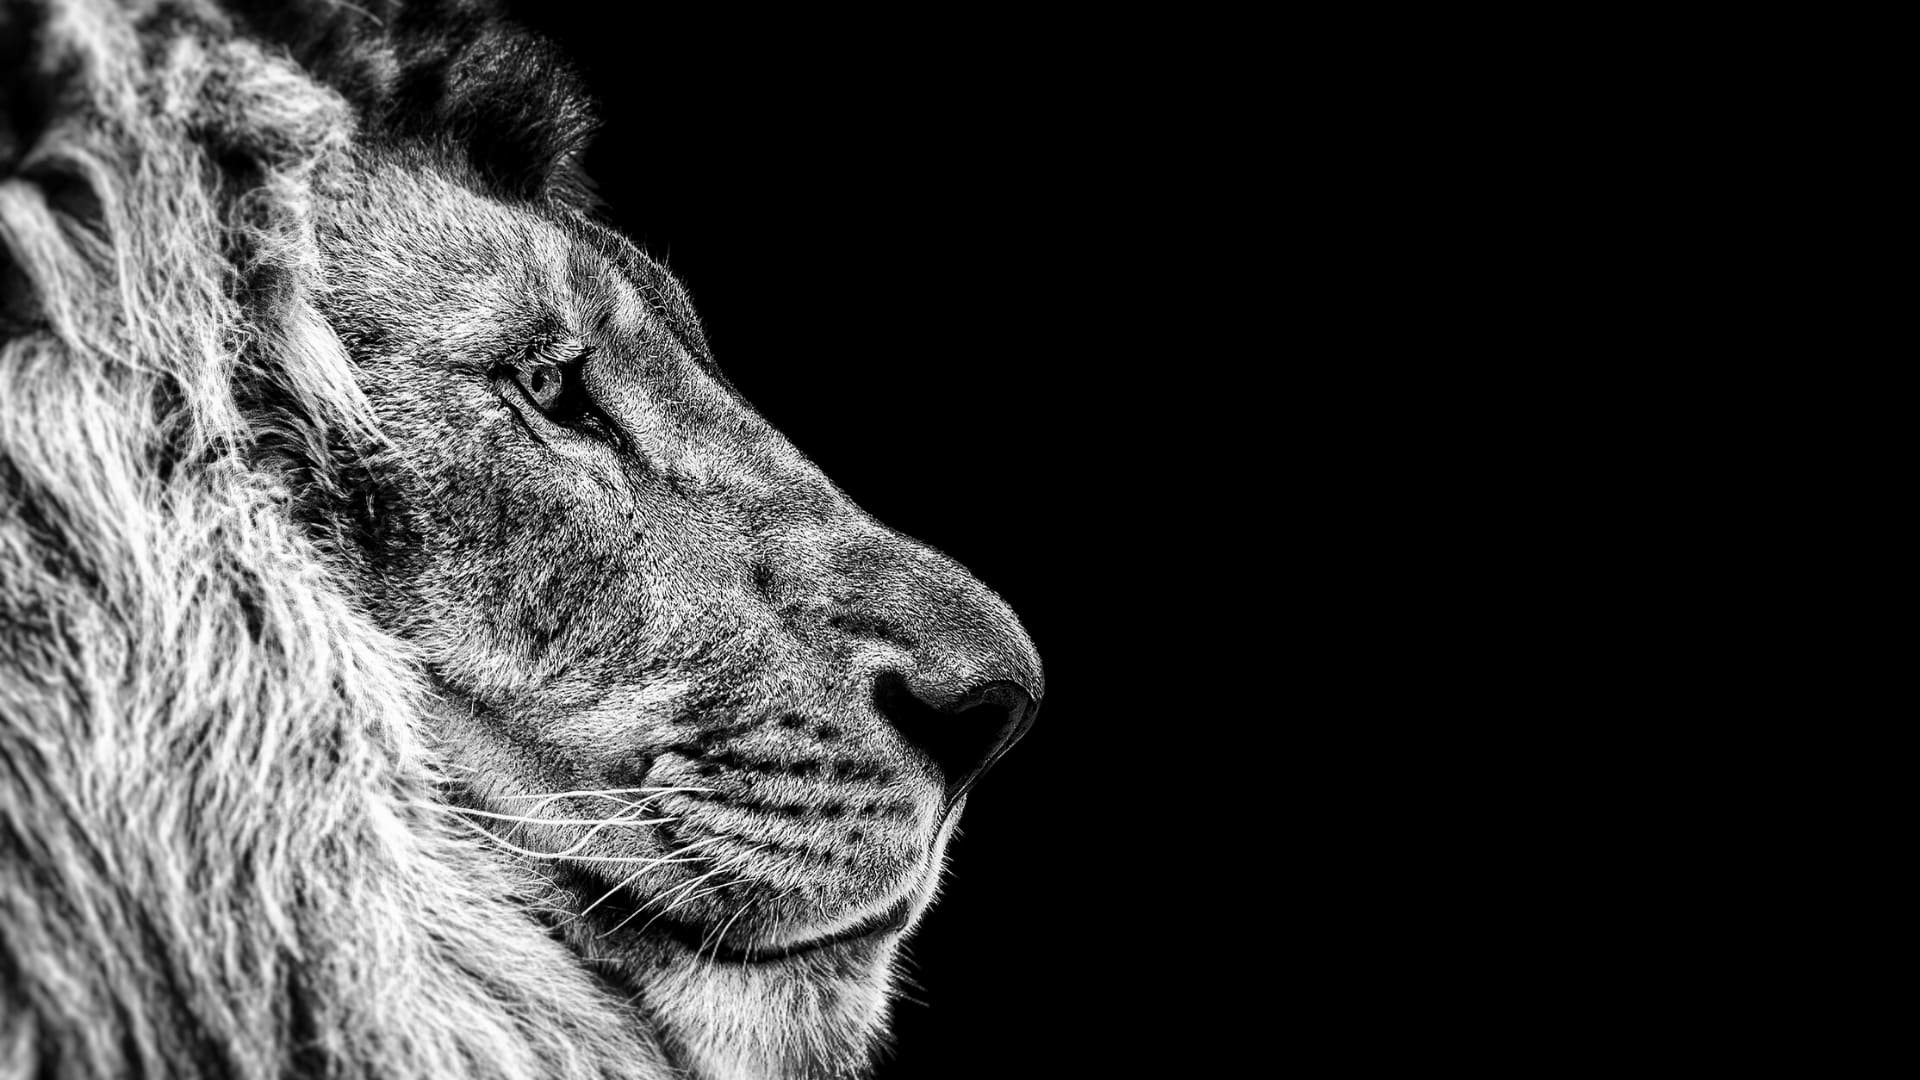 Images of lions